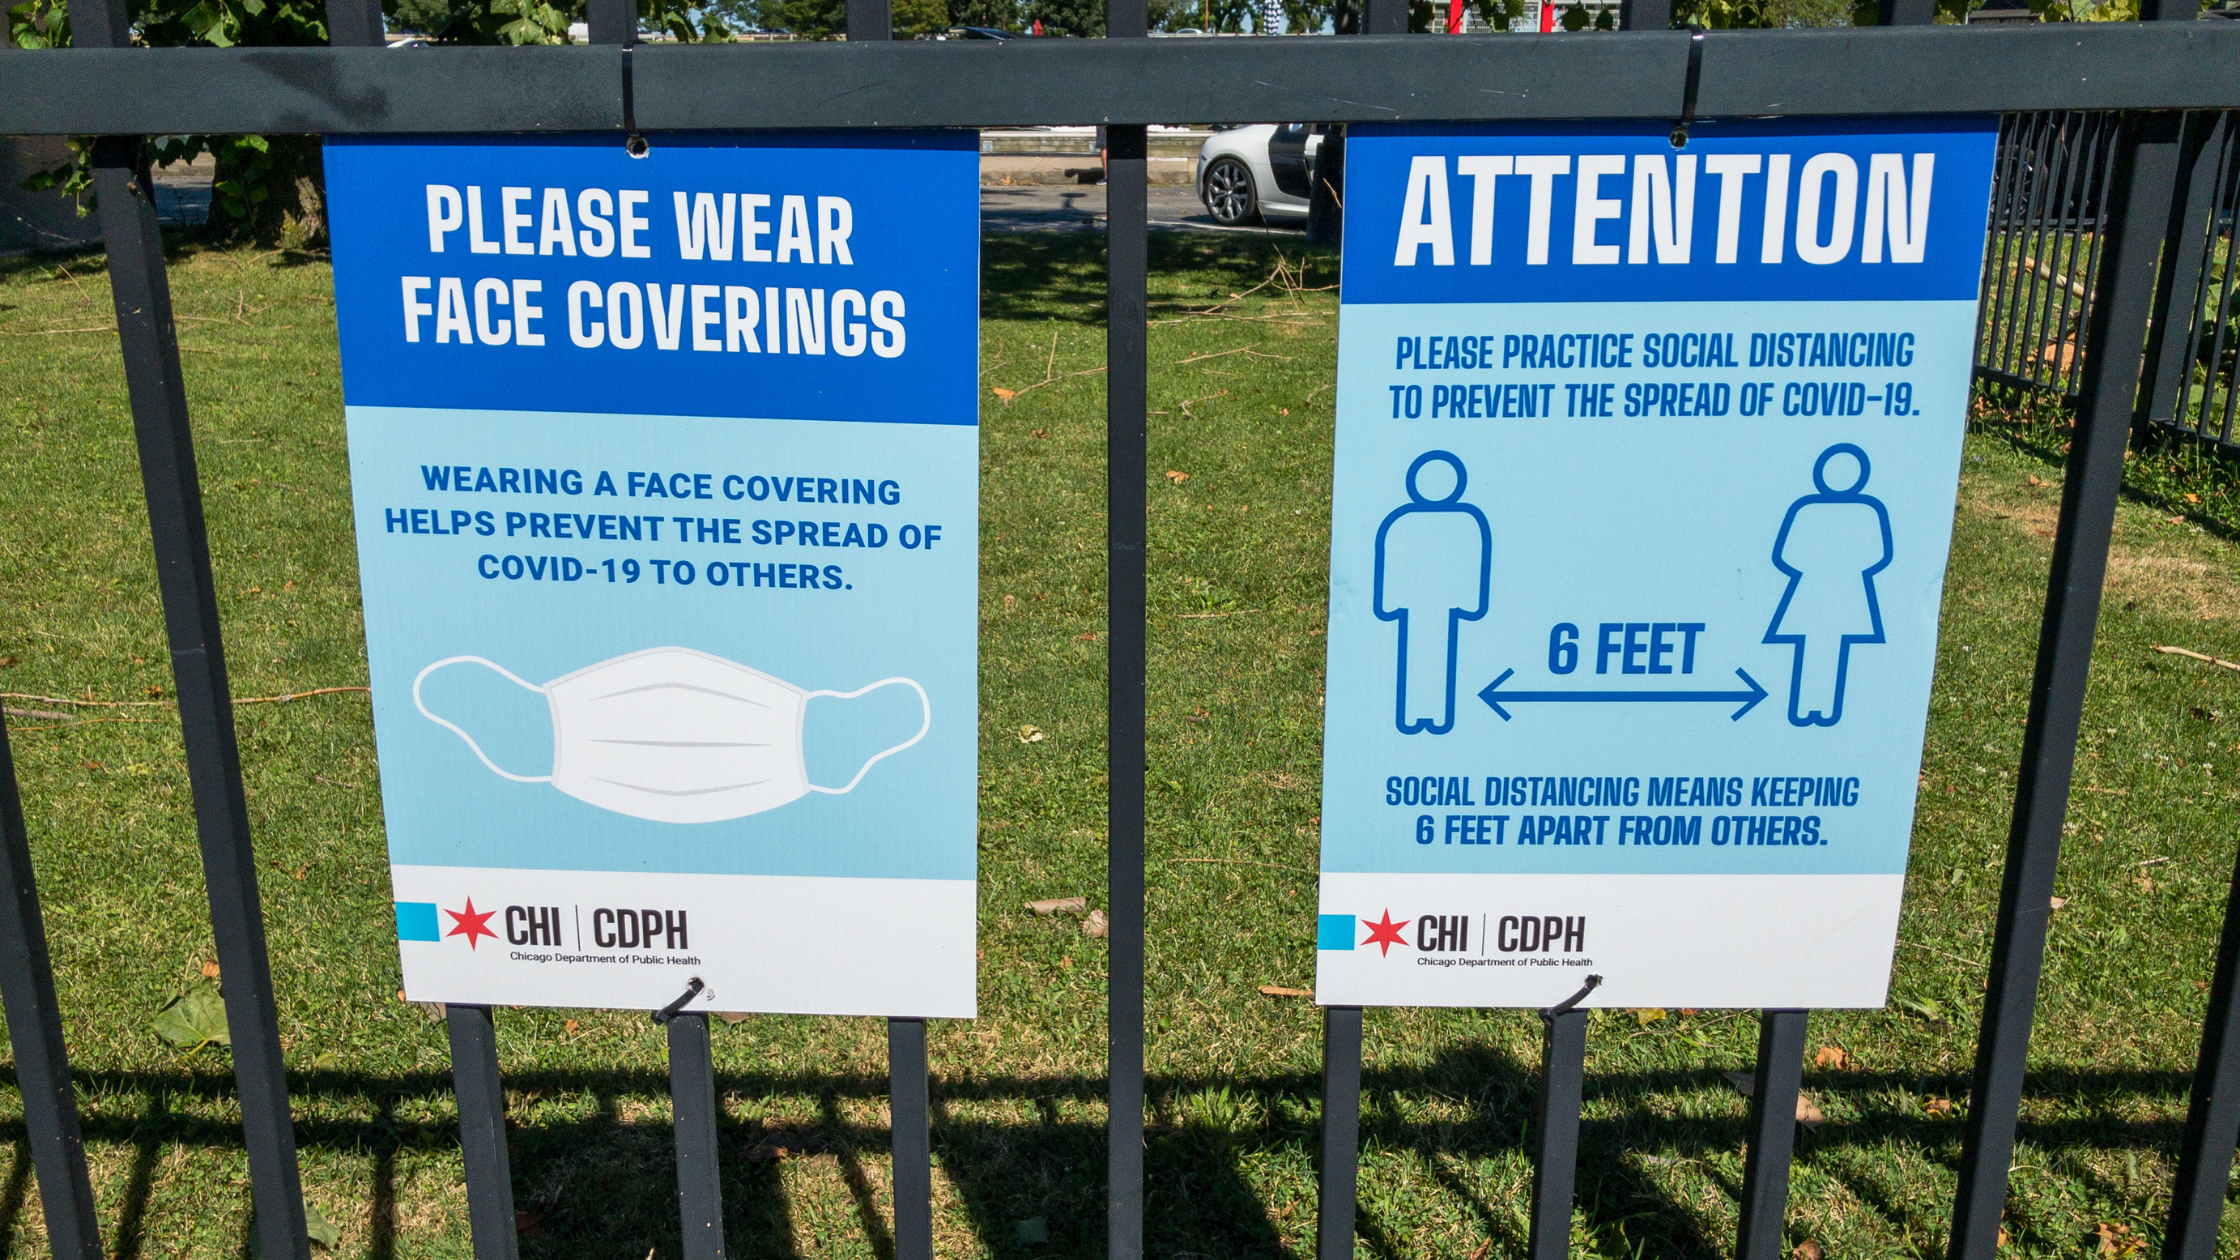 Covid-19 in Chicago: How to Protect Yourself